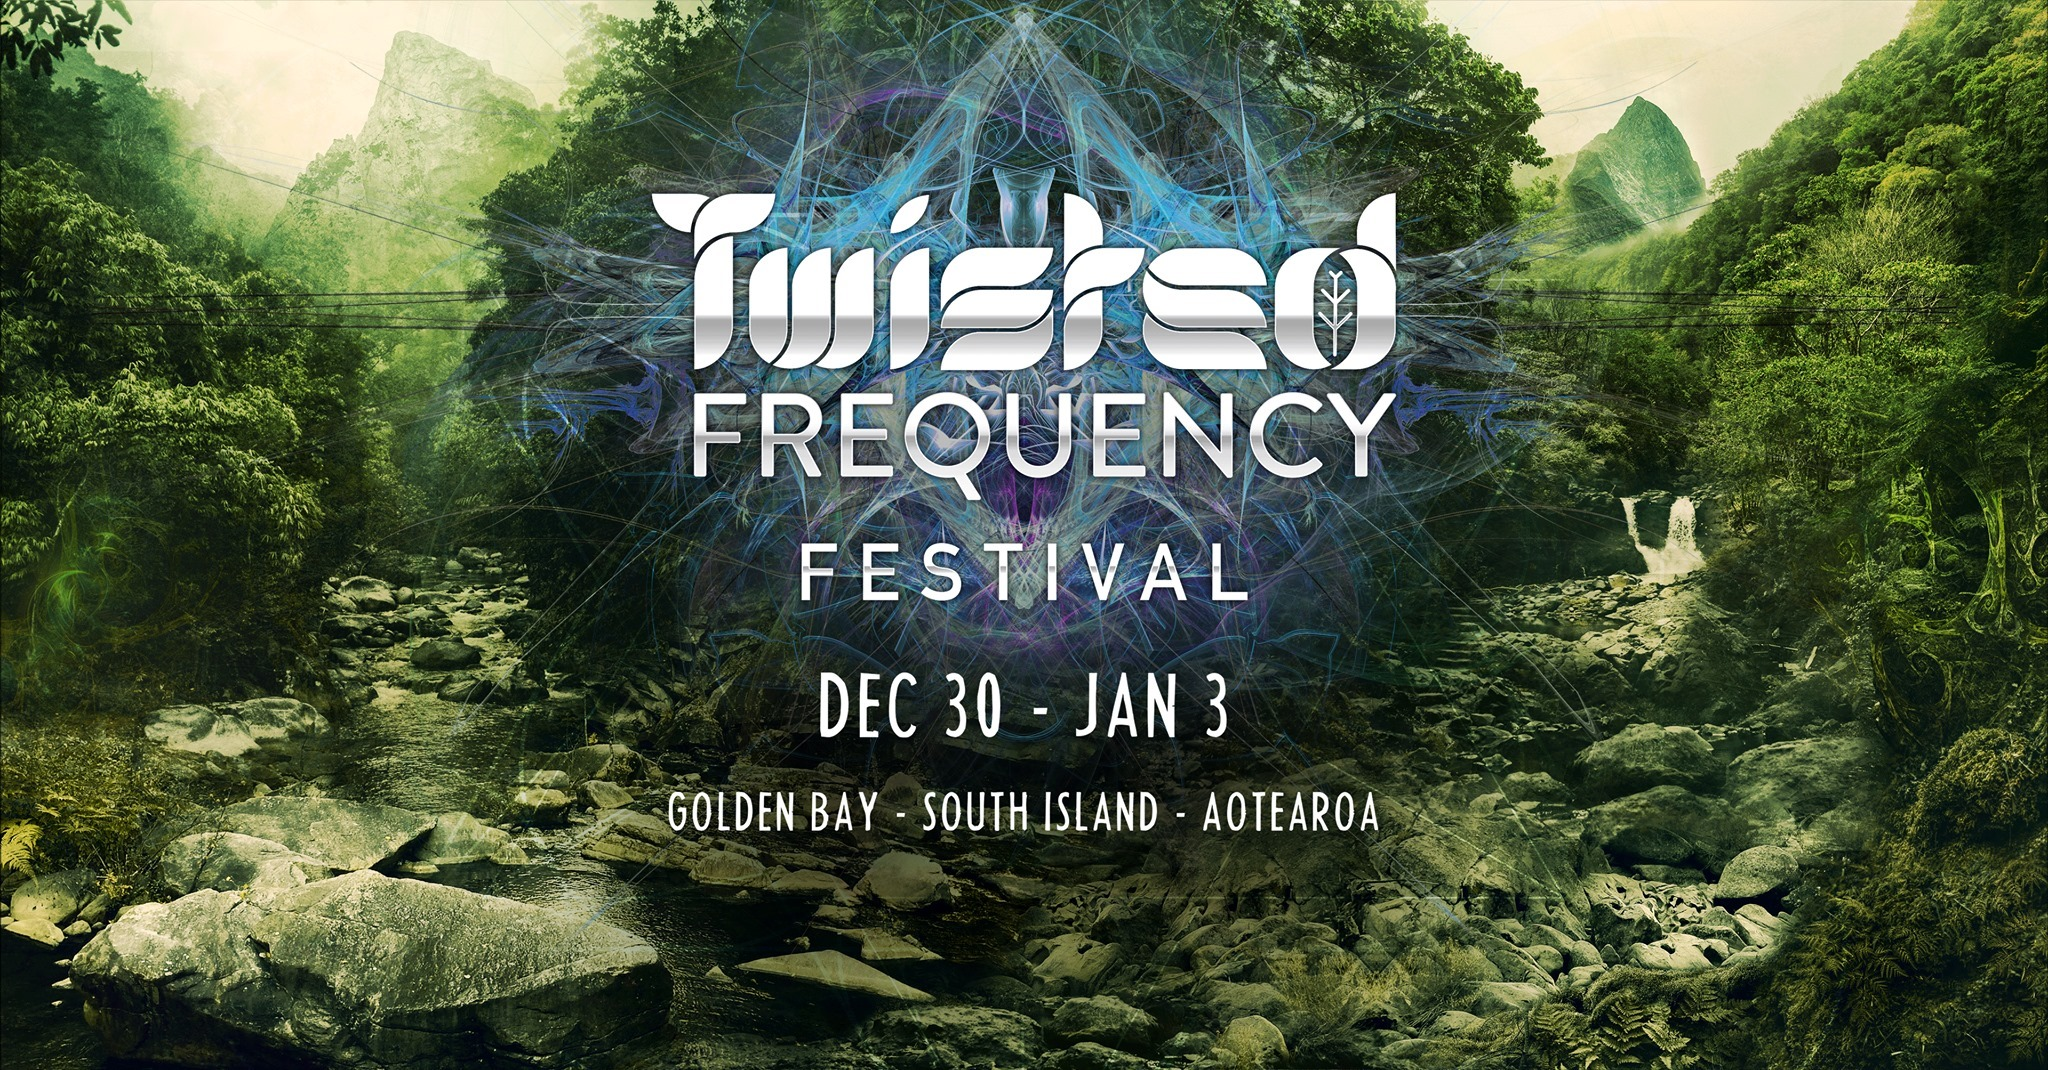 Twisted Frequency Festival NZ 2021: 2022Twisted Frequency Festival NZ 2021: 2022